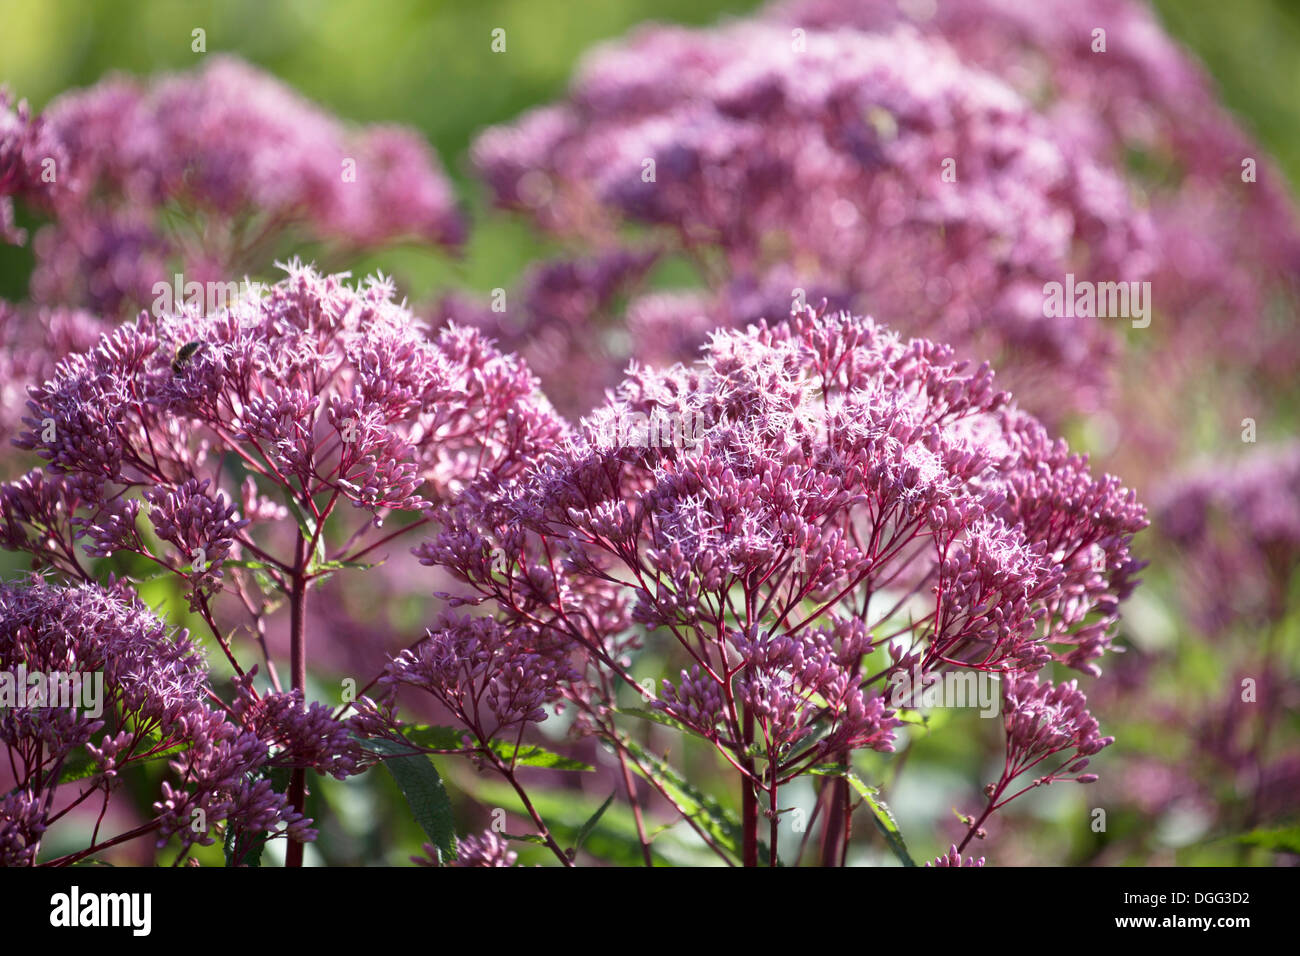 Close up of Joe-Pye Weed flower with shallow depth of field. - Stock Image